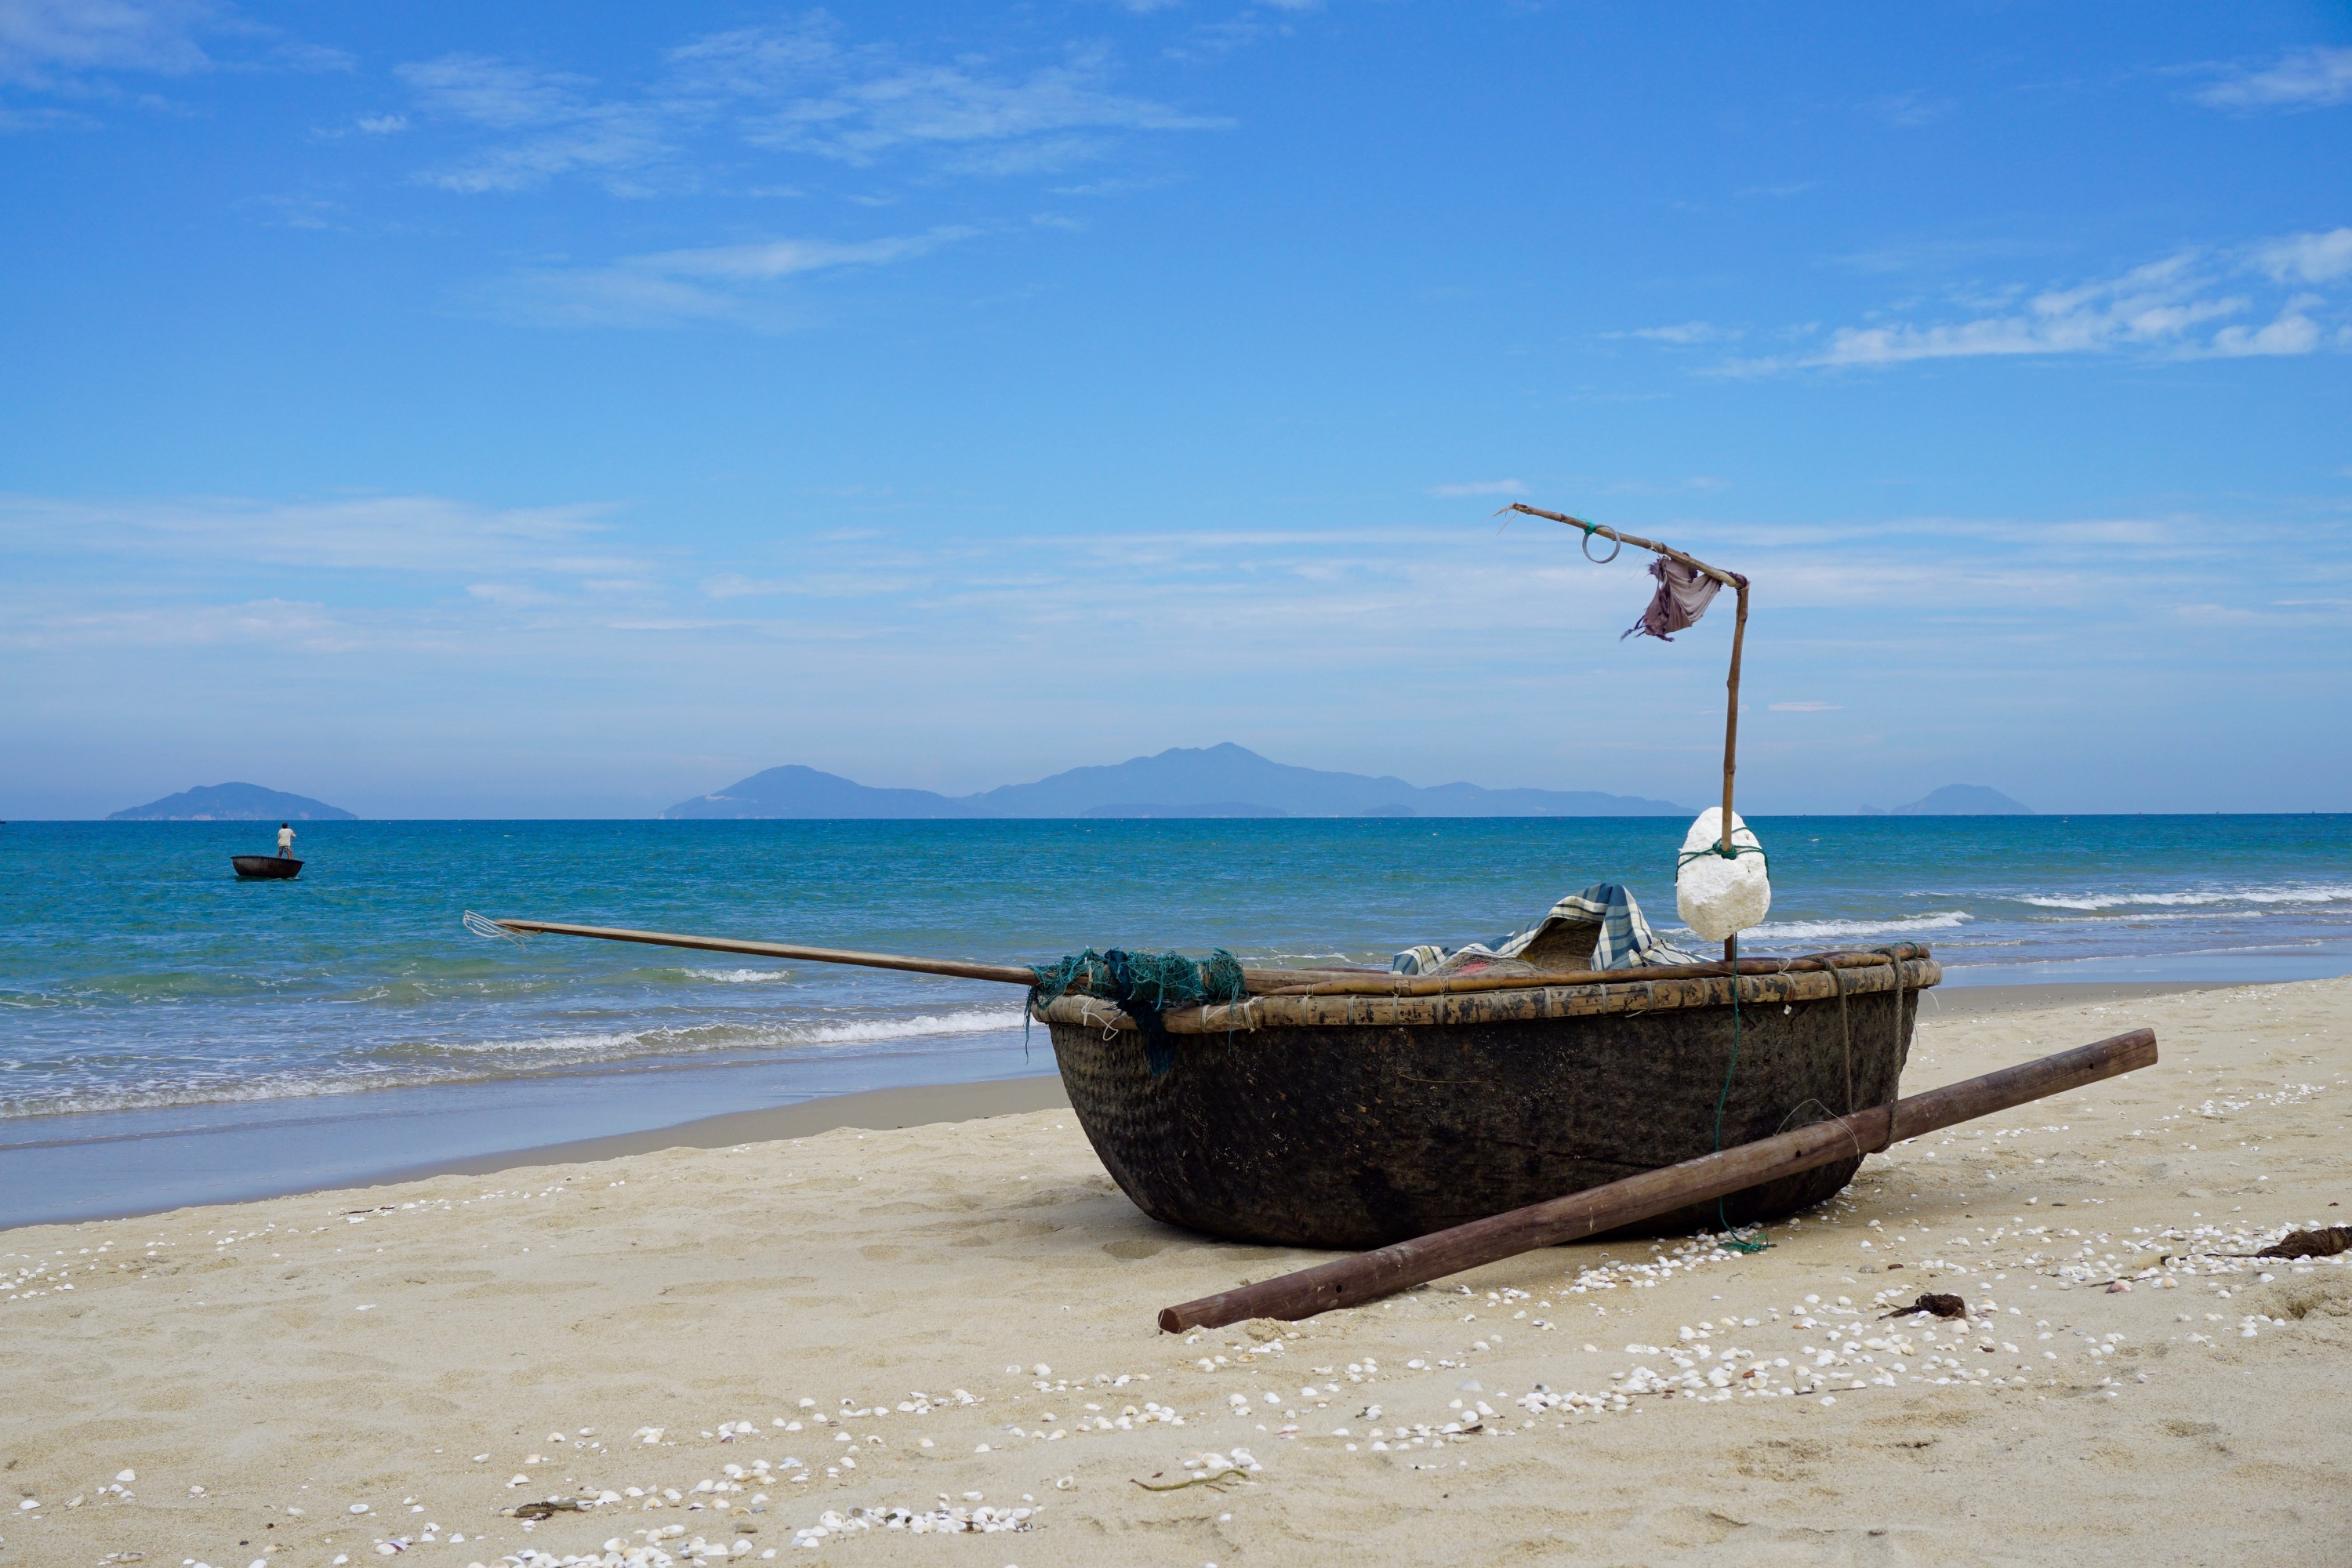 a local fishing boat and the South China Sea